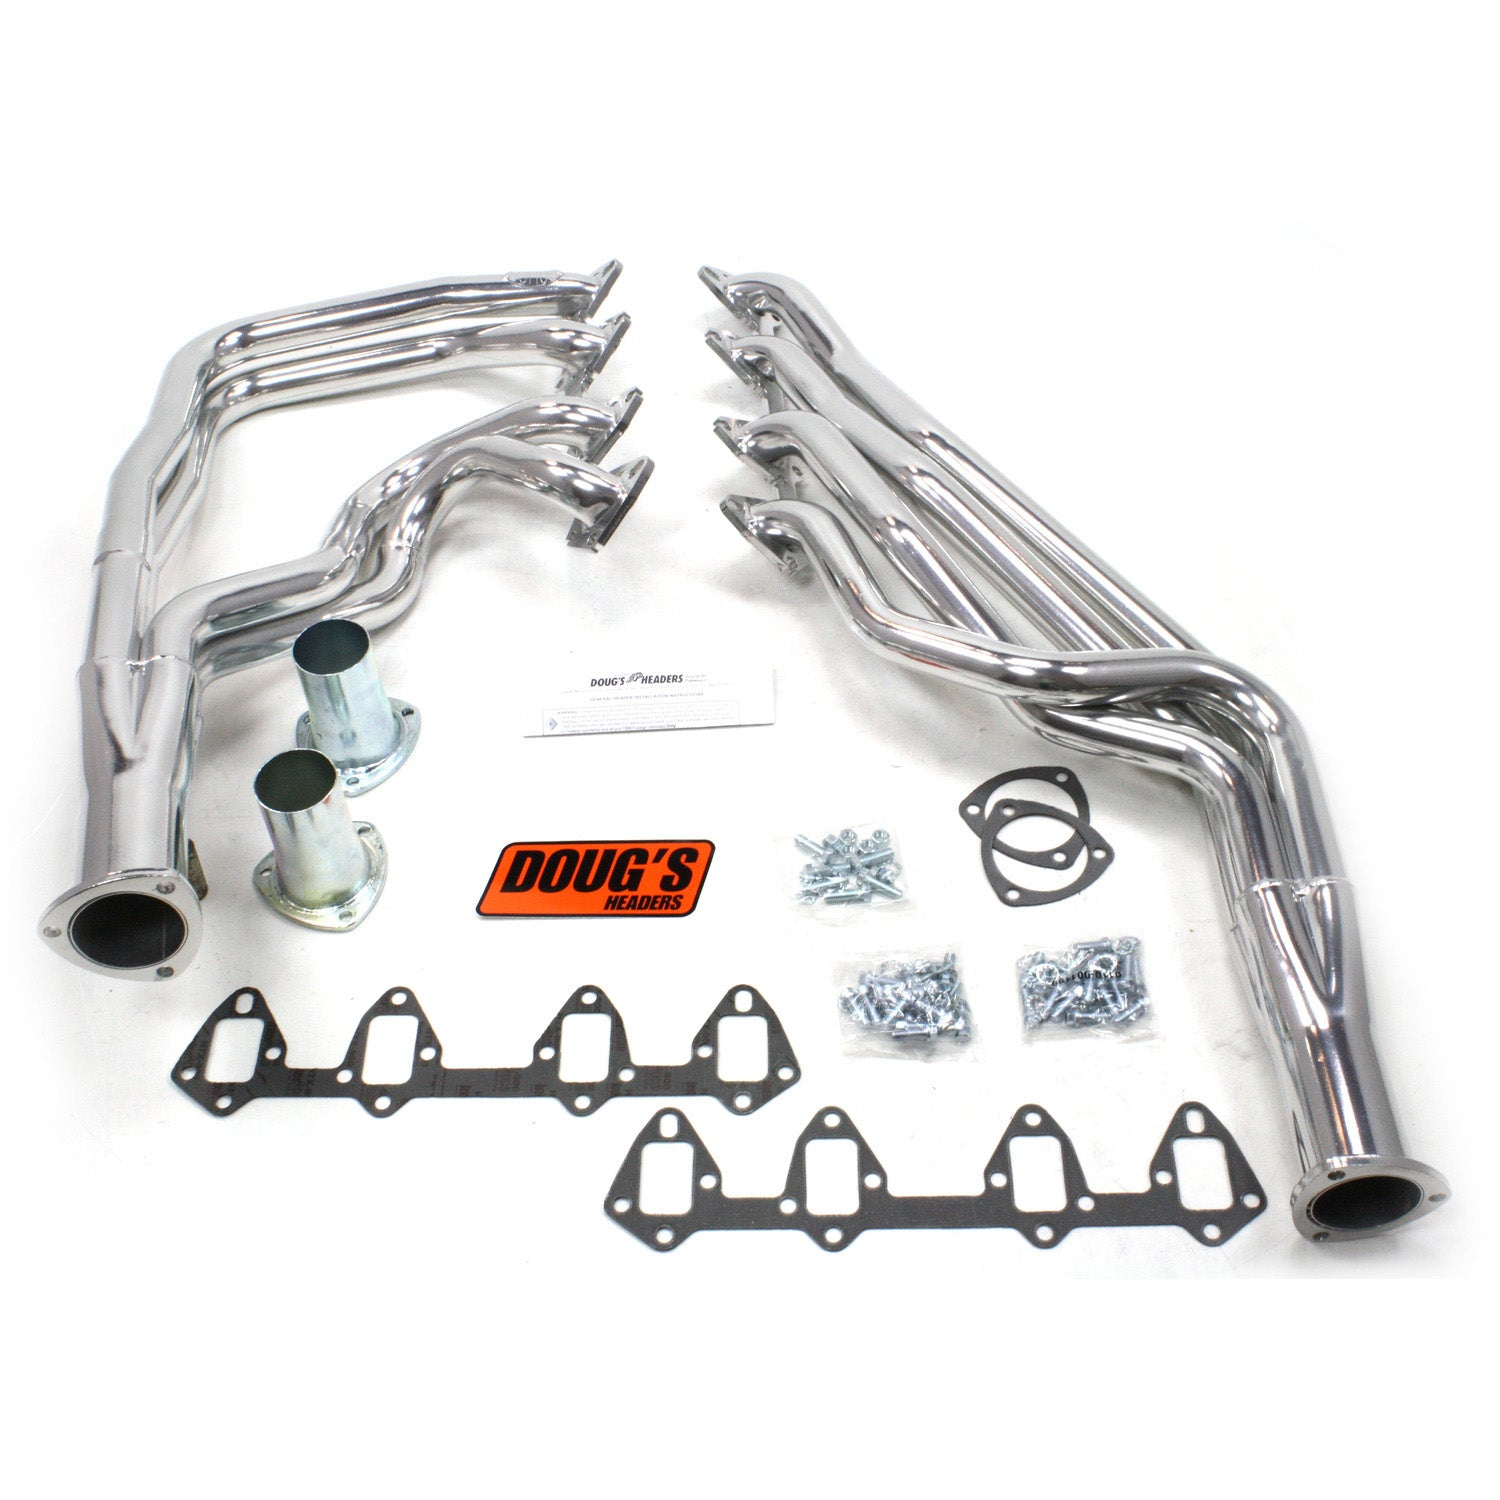 "Doug's Headers D625 1 3/4"" 4-Tube Full Length Header Ford Fairlane FE 64-73 Metallic Ceramic Coating"